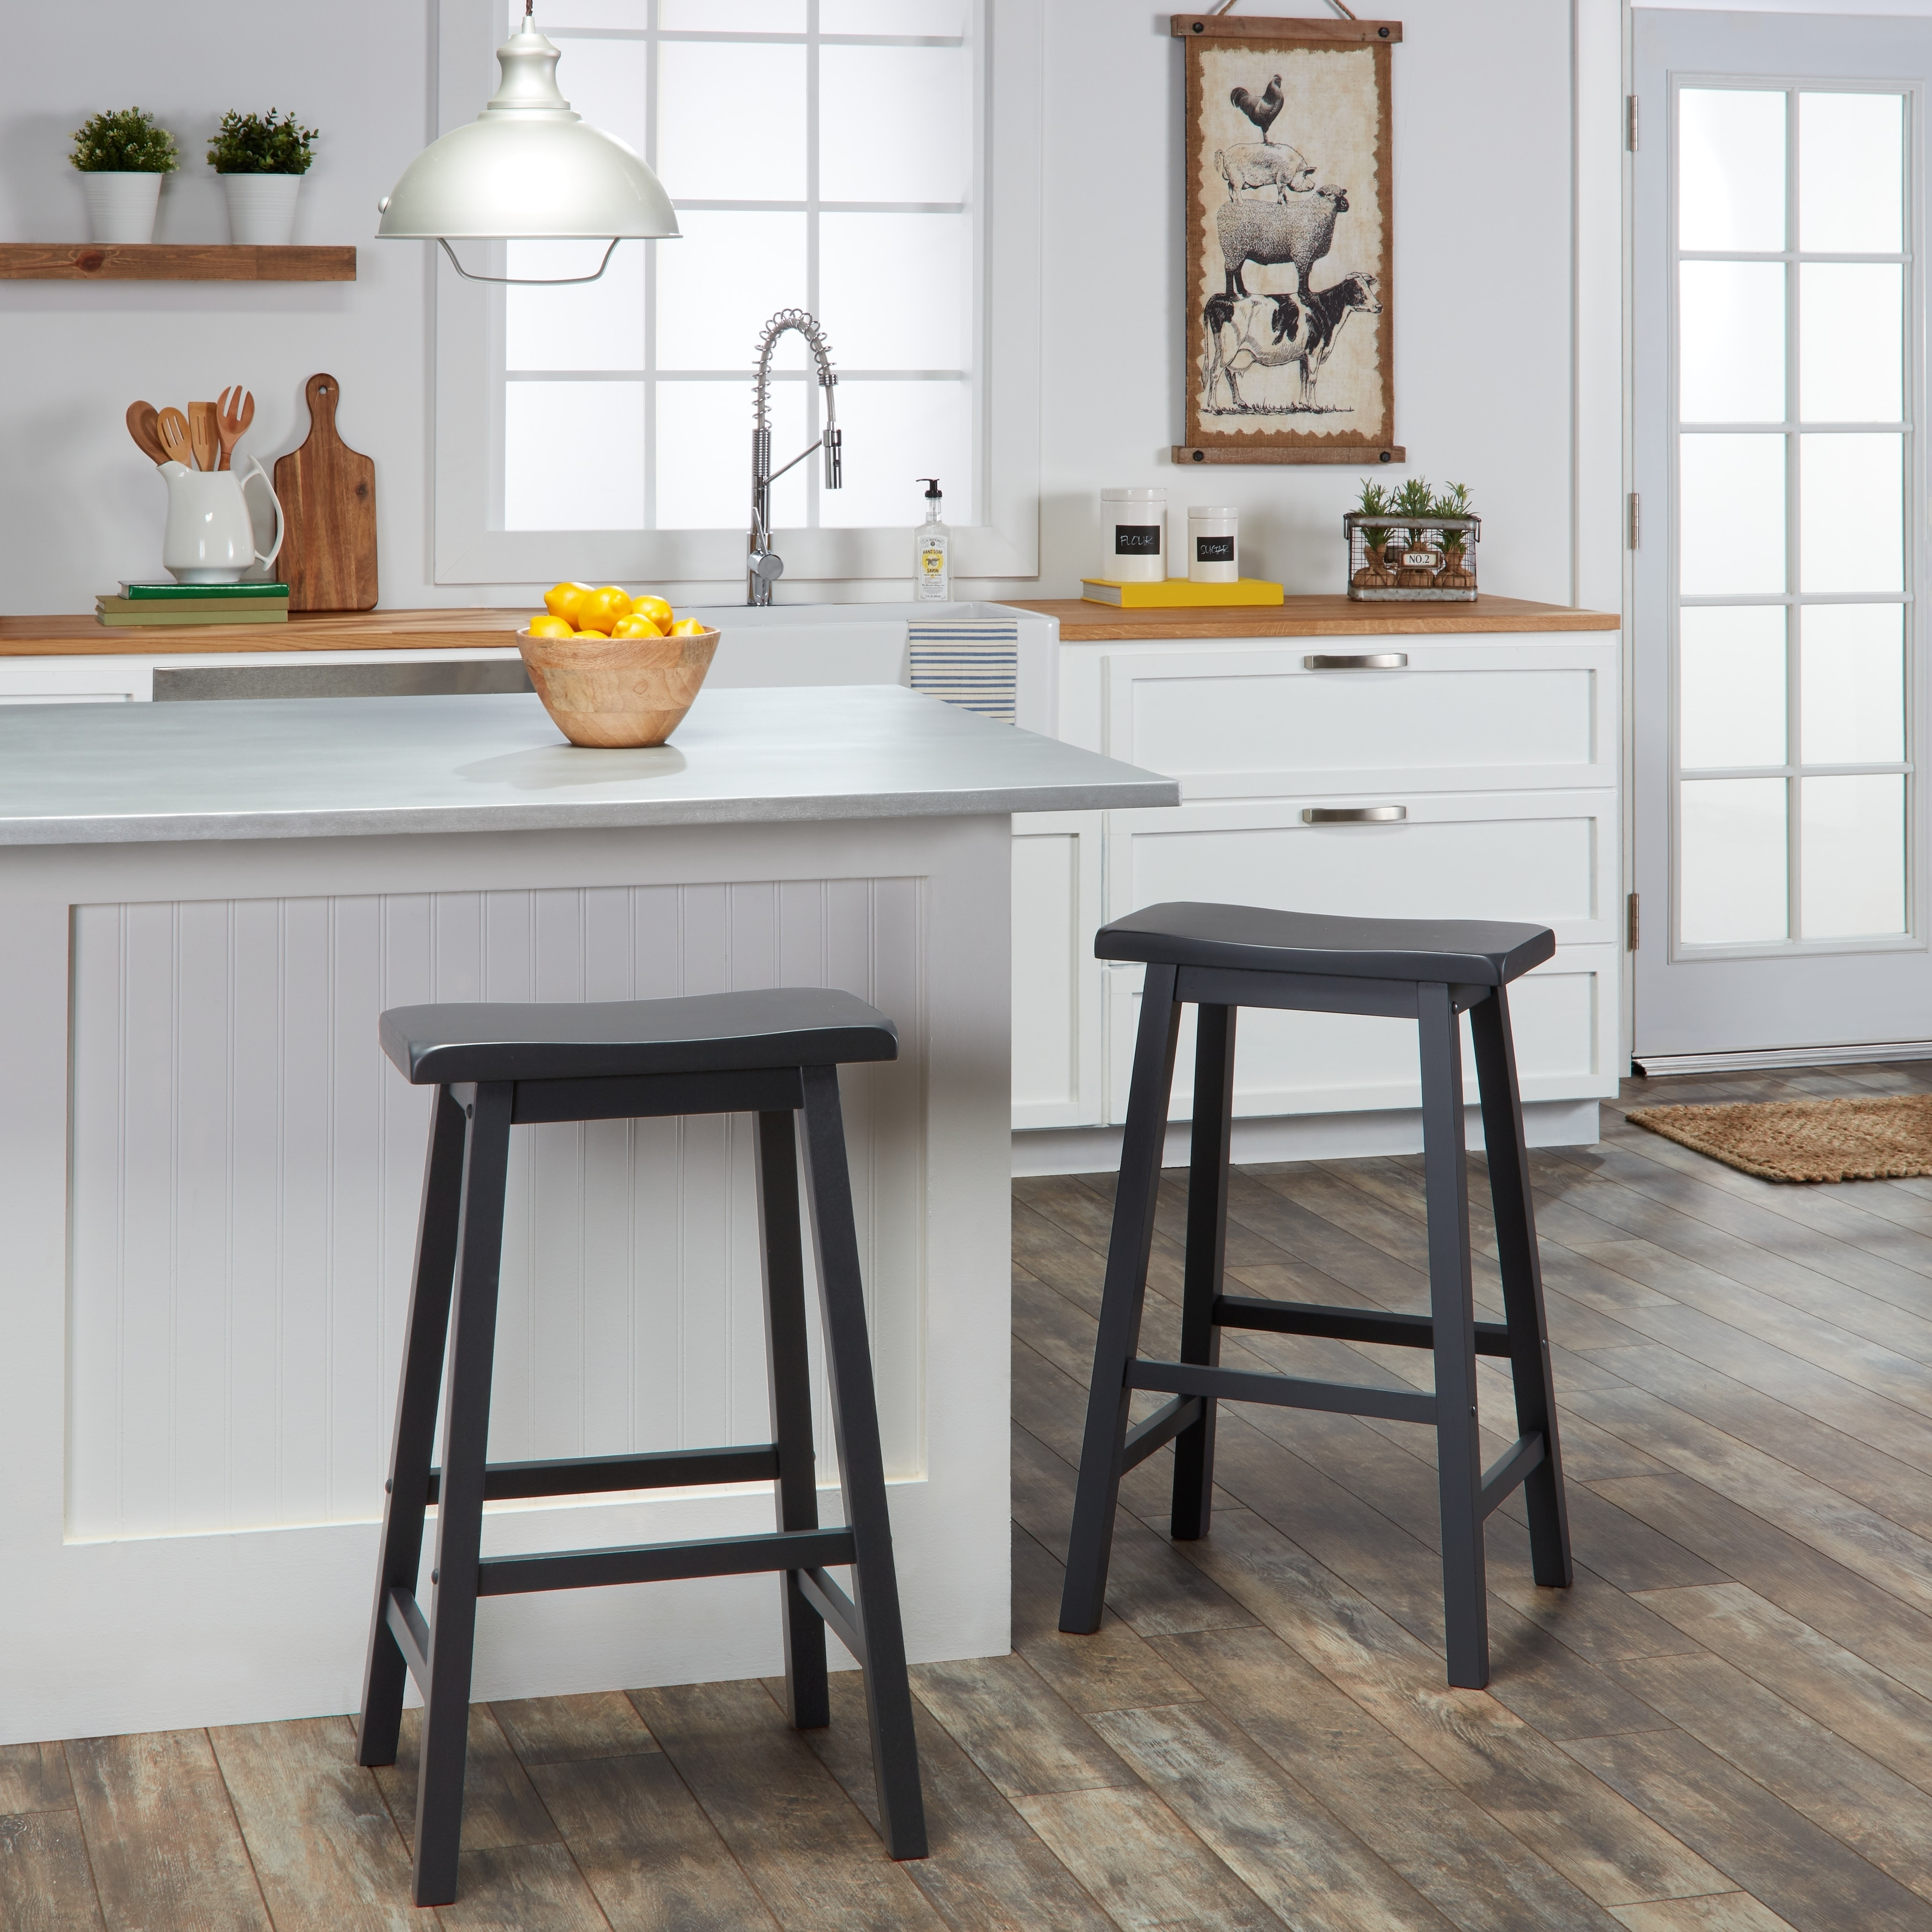 Bar Stools Set Of 2 Saddle Seat Wood Kitchen Dining